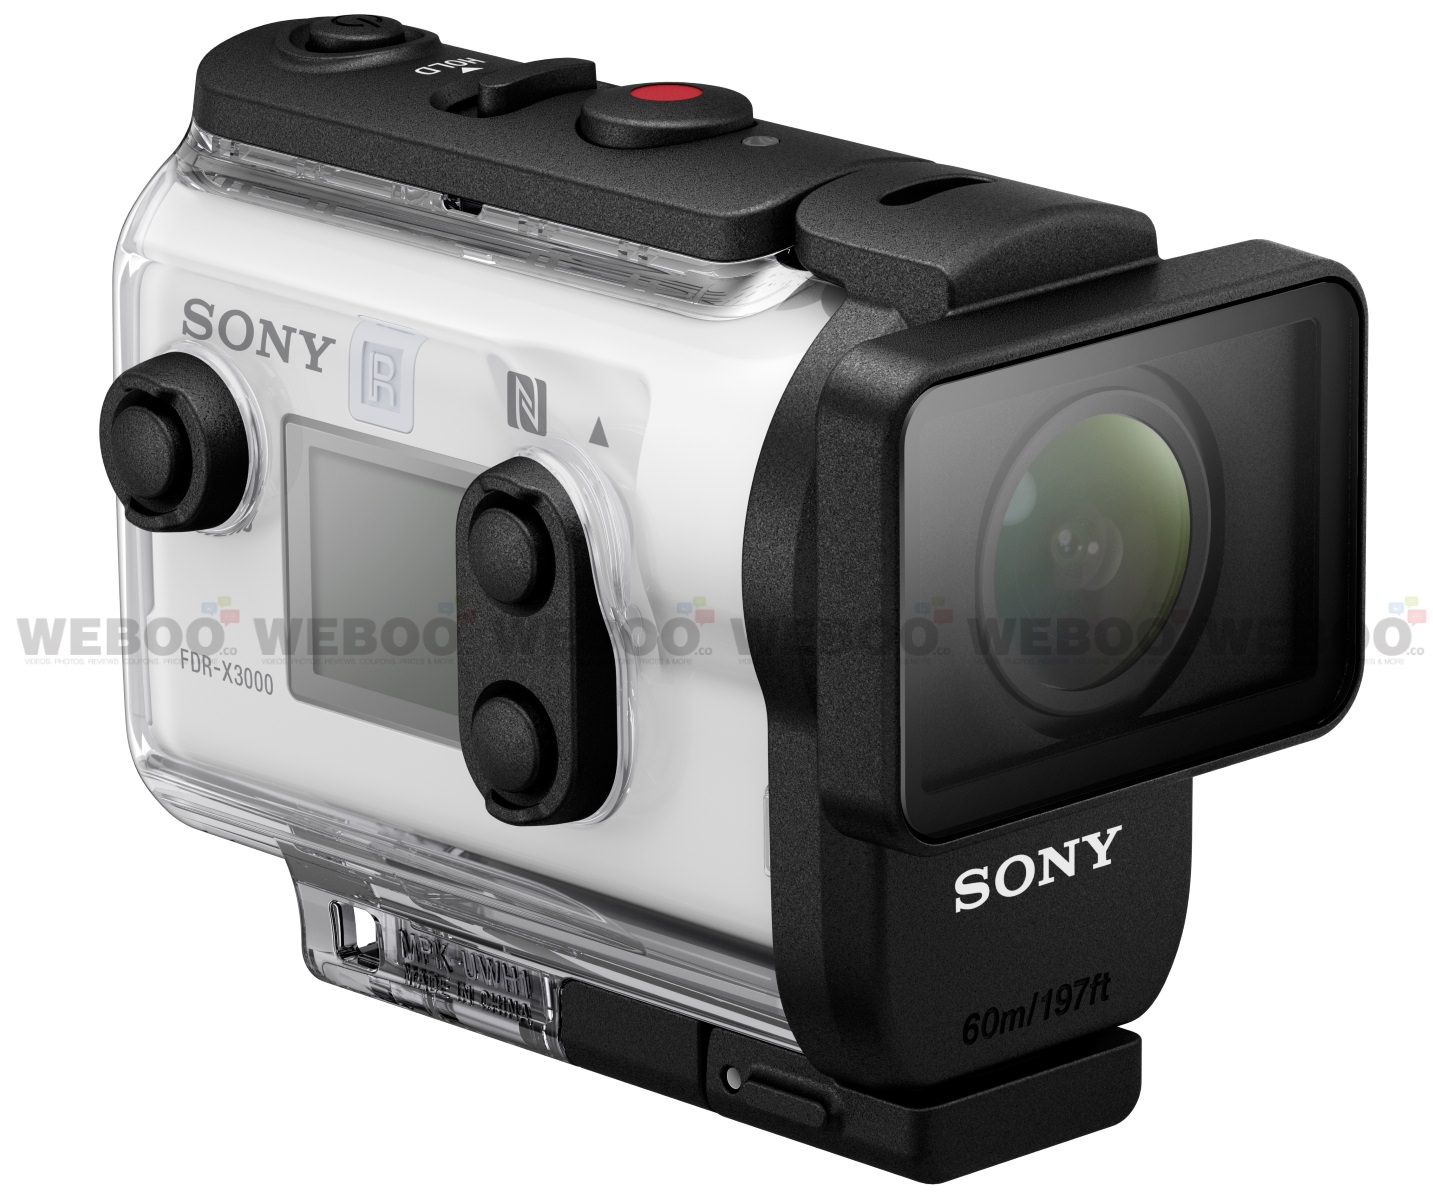 Sony FDR-X3000 4K Action Cam with Built-in Wi-Fi and GPS Unveiled Weboo-co-2